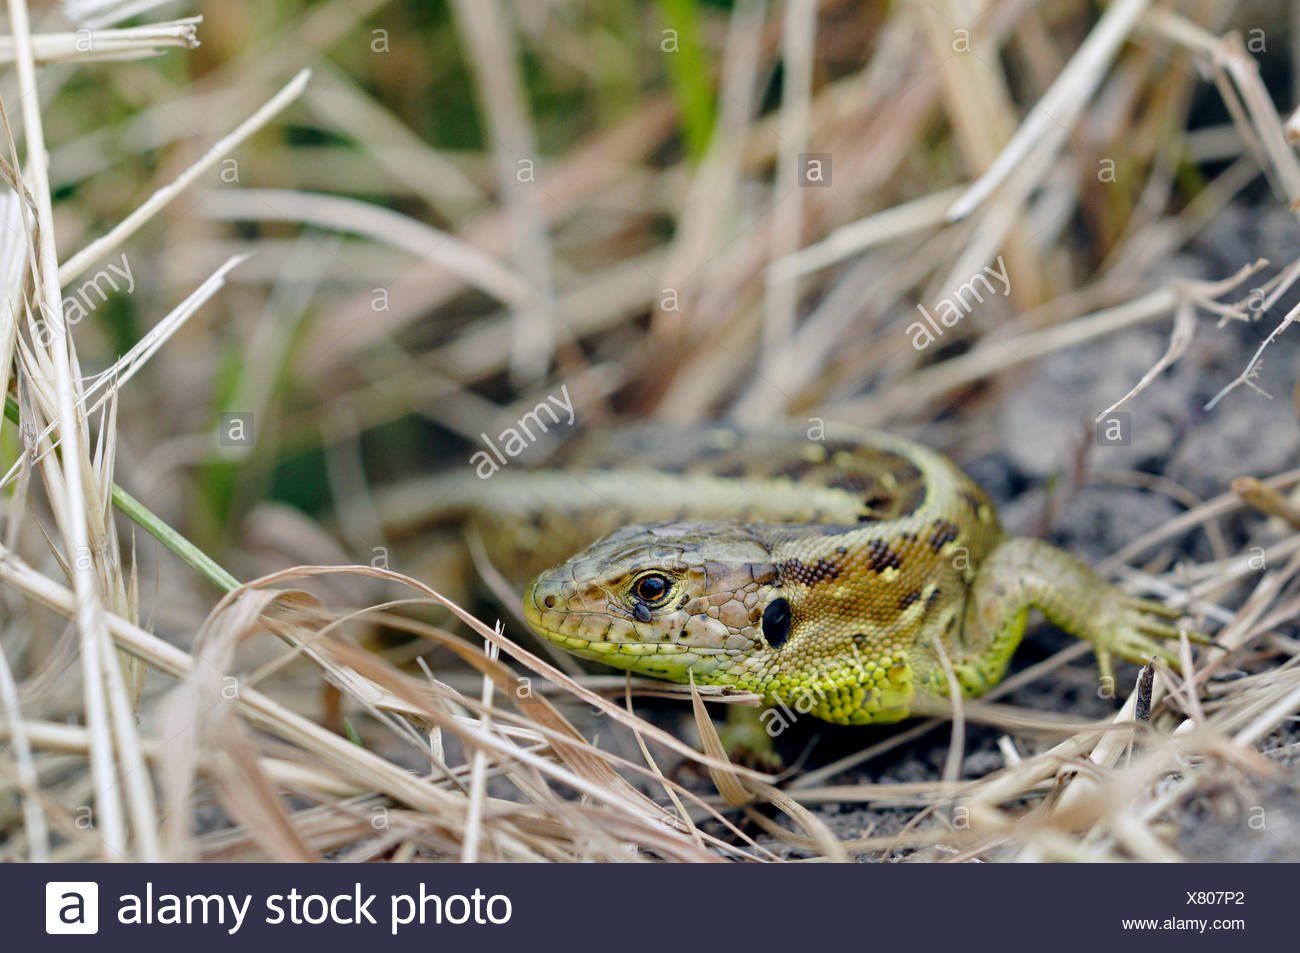 sand lizard (Lacerta agilis), female in front of retreat, Germany - Stock Image